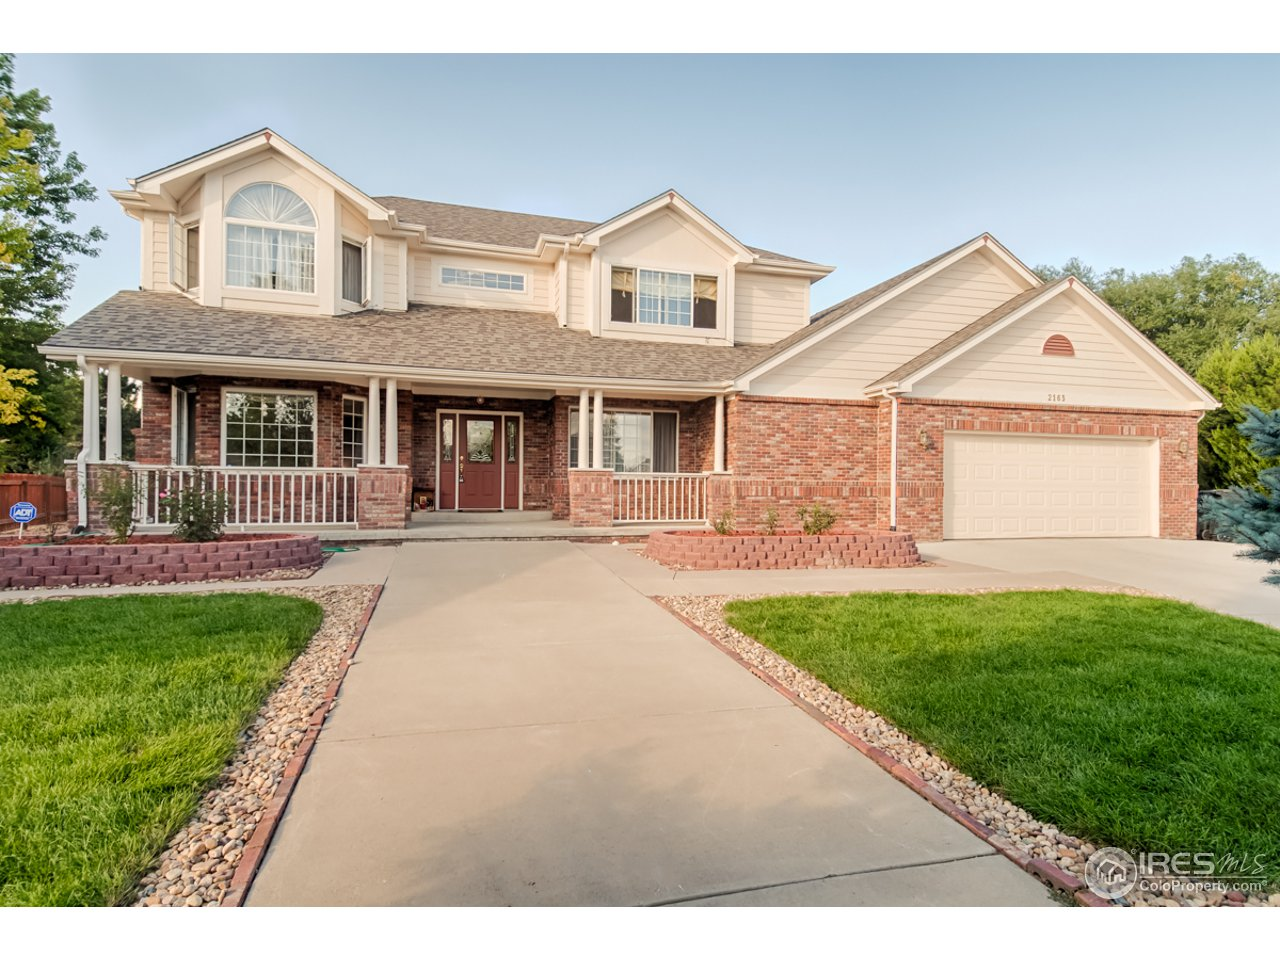 2163 Sand Dollar Cir, Longmont CO 80503